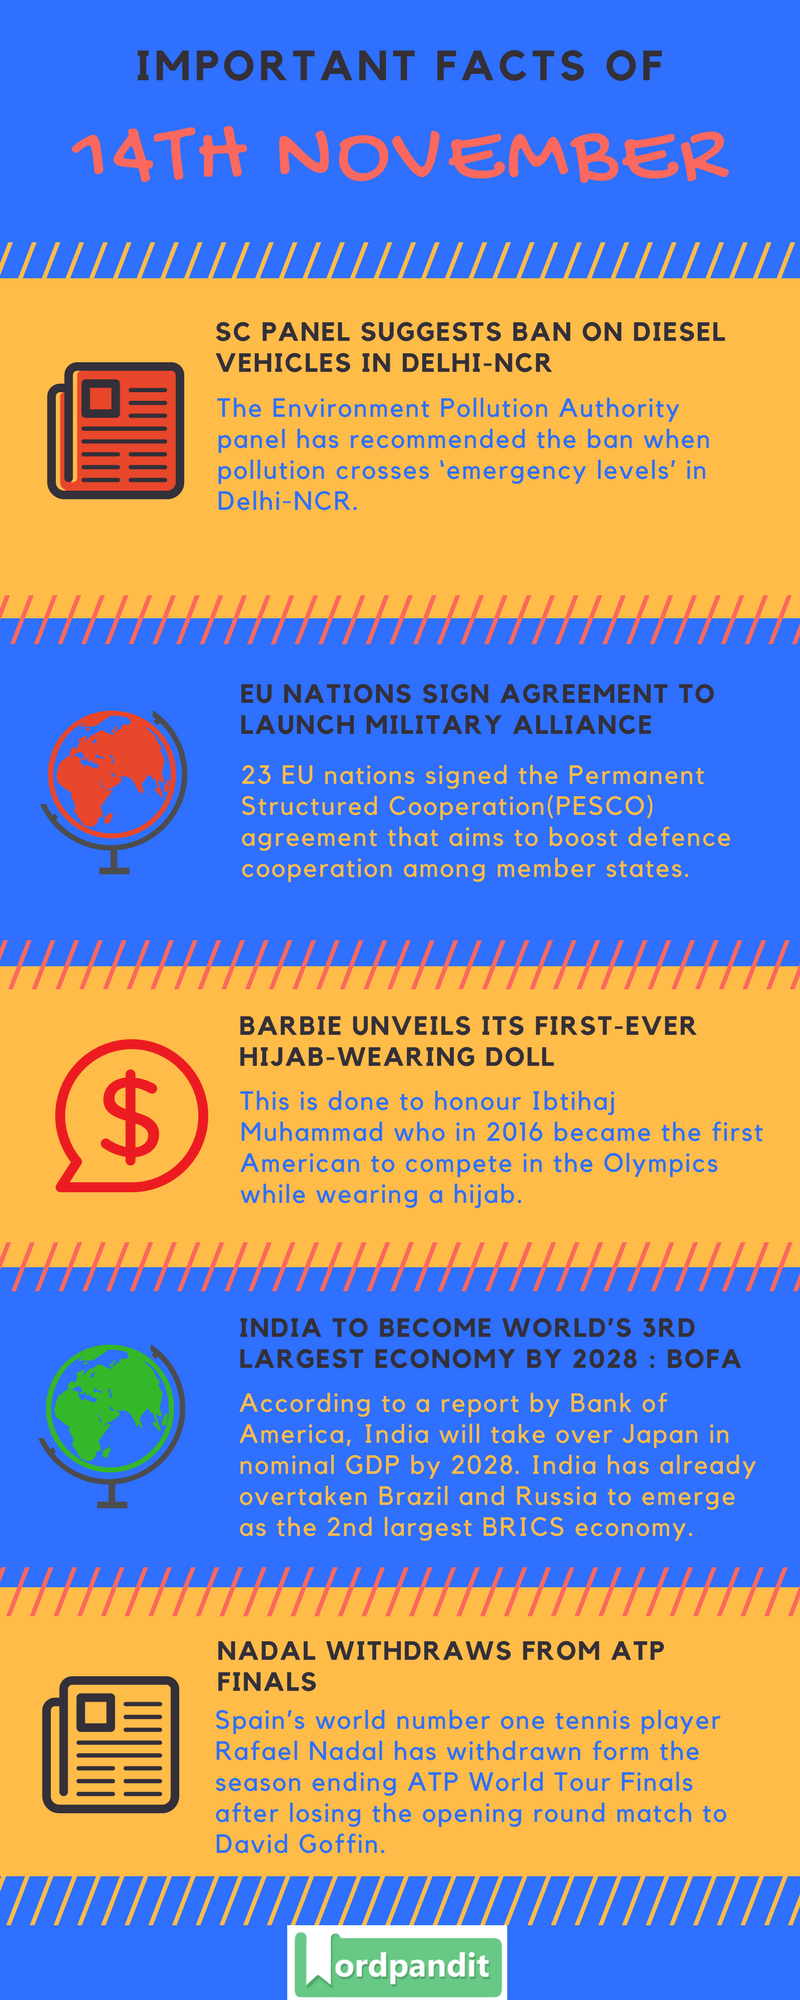 Daily-Current-Affairs-14-november-2017-Current-Affairs-Quiz-november-14-2017-Current-Affairs-Infographic